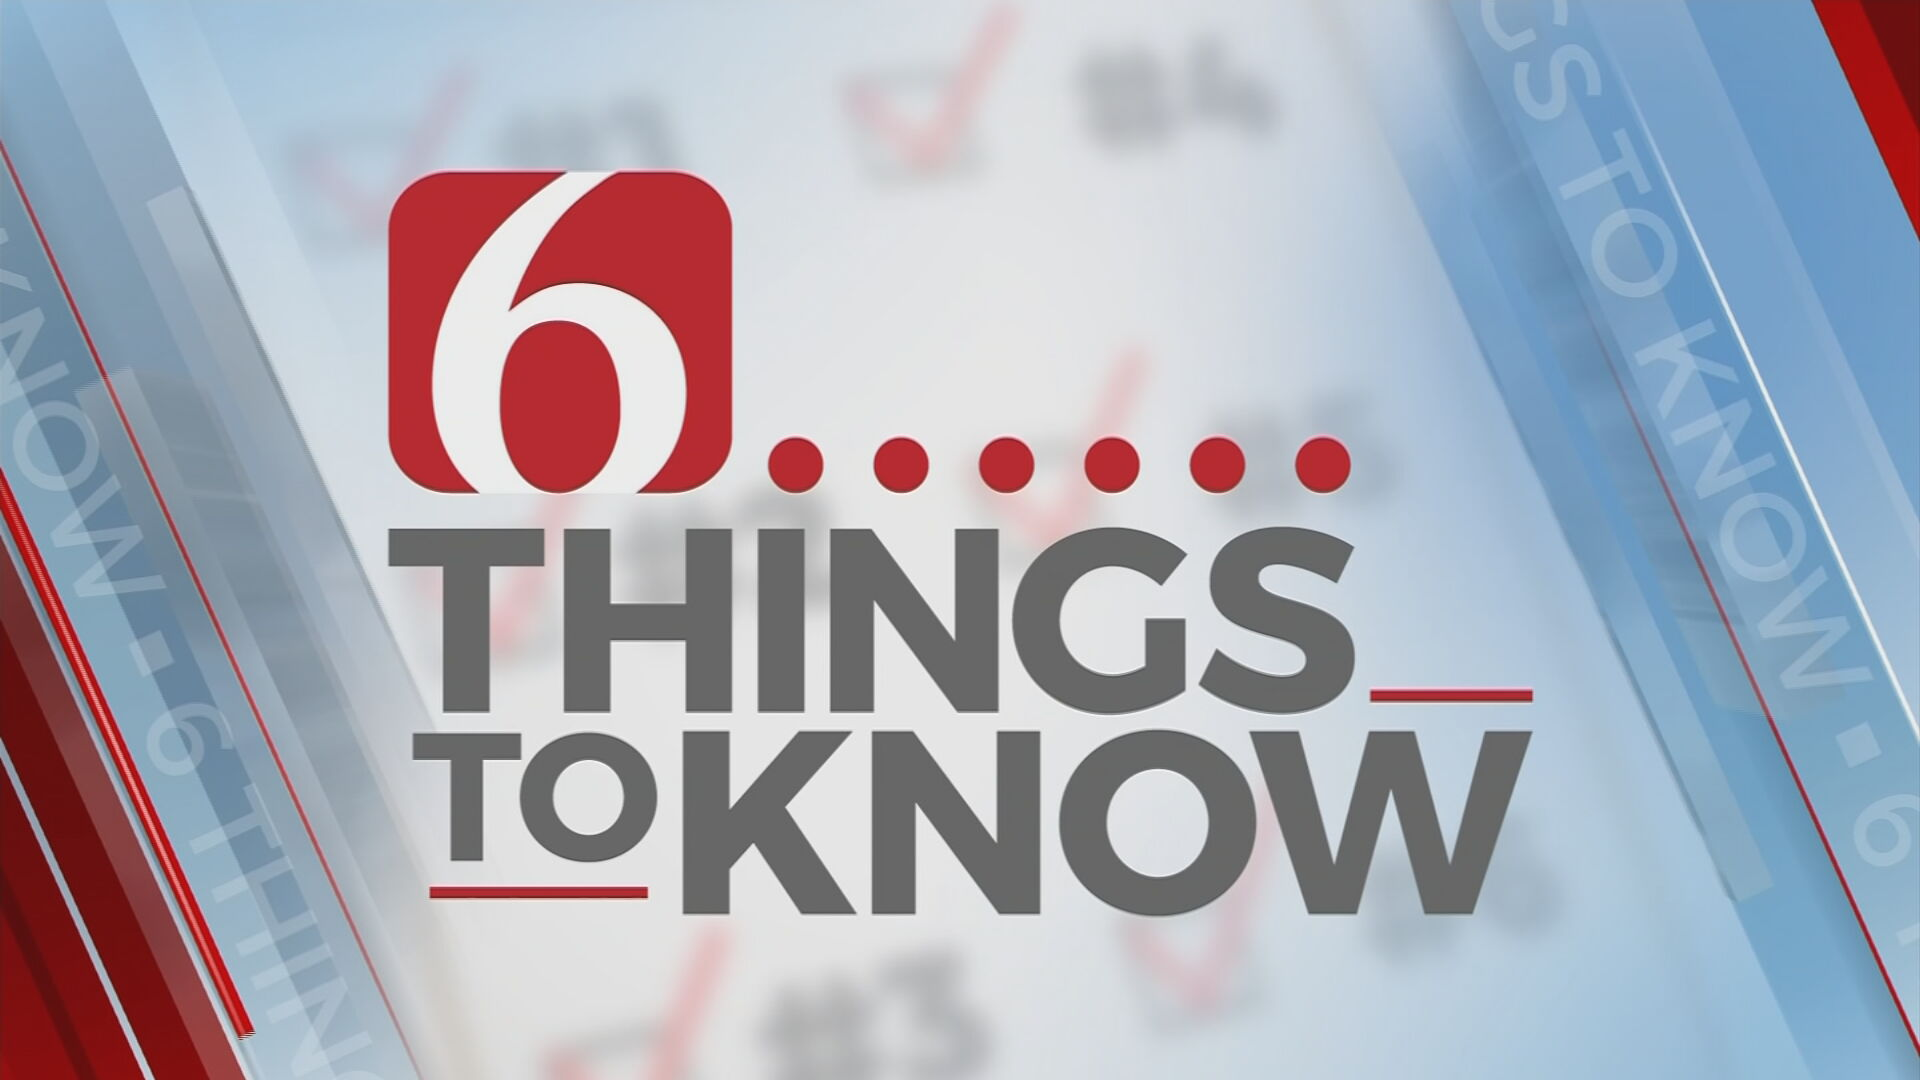 6 Things You Need To Know: United Nations, Negotiating Relations, New Launch Events